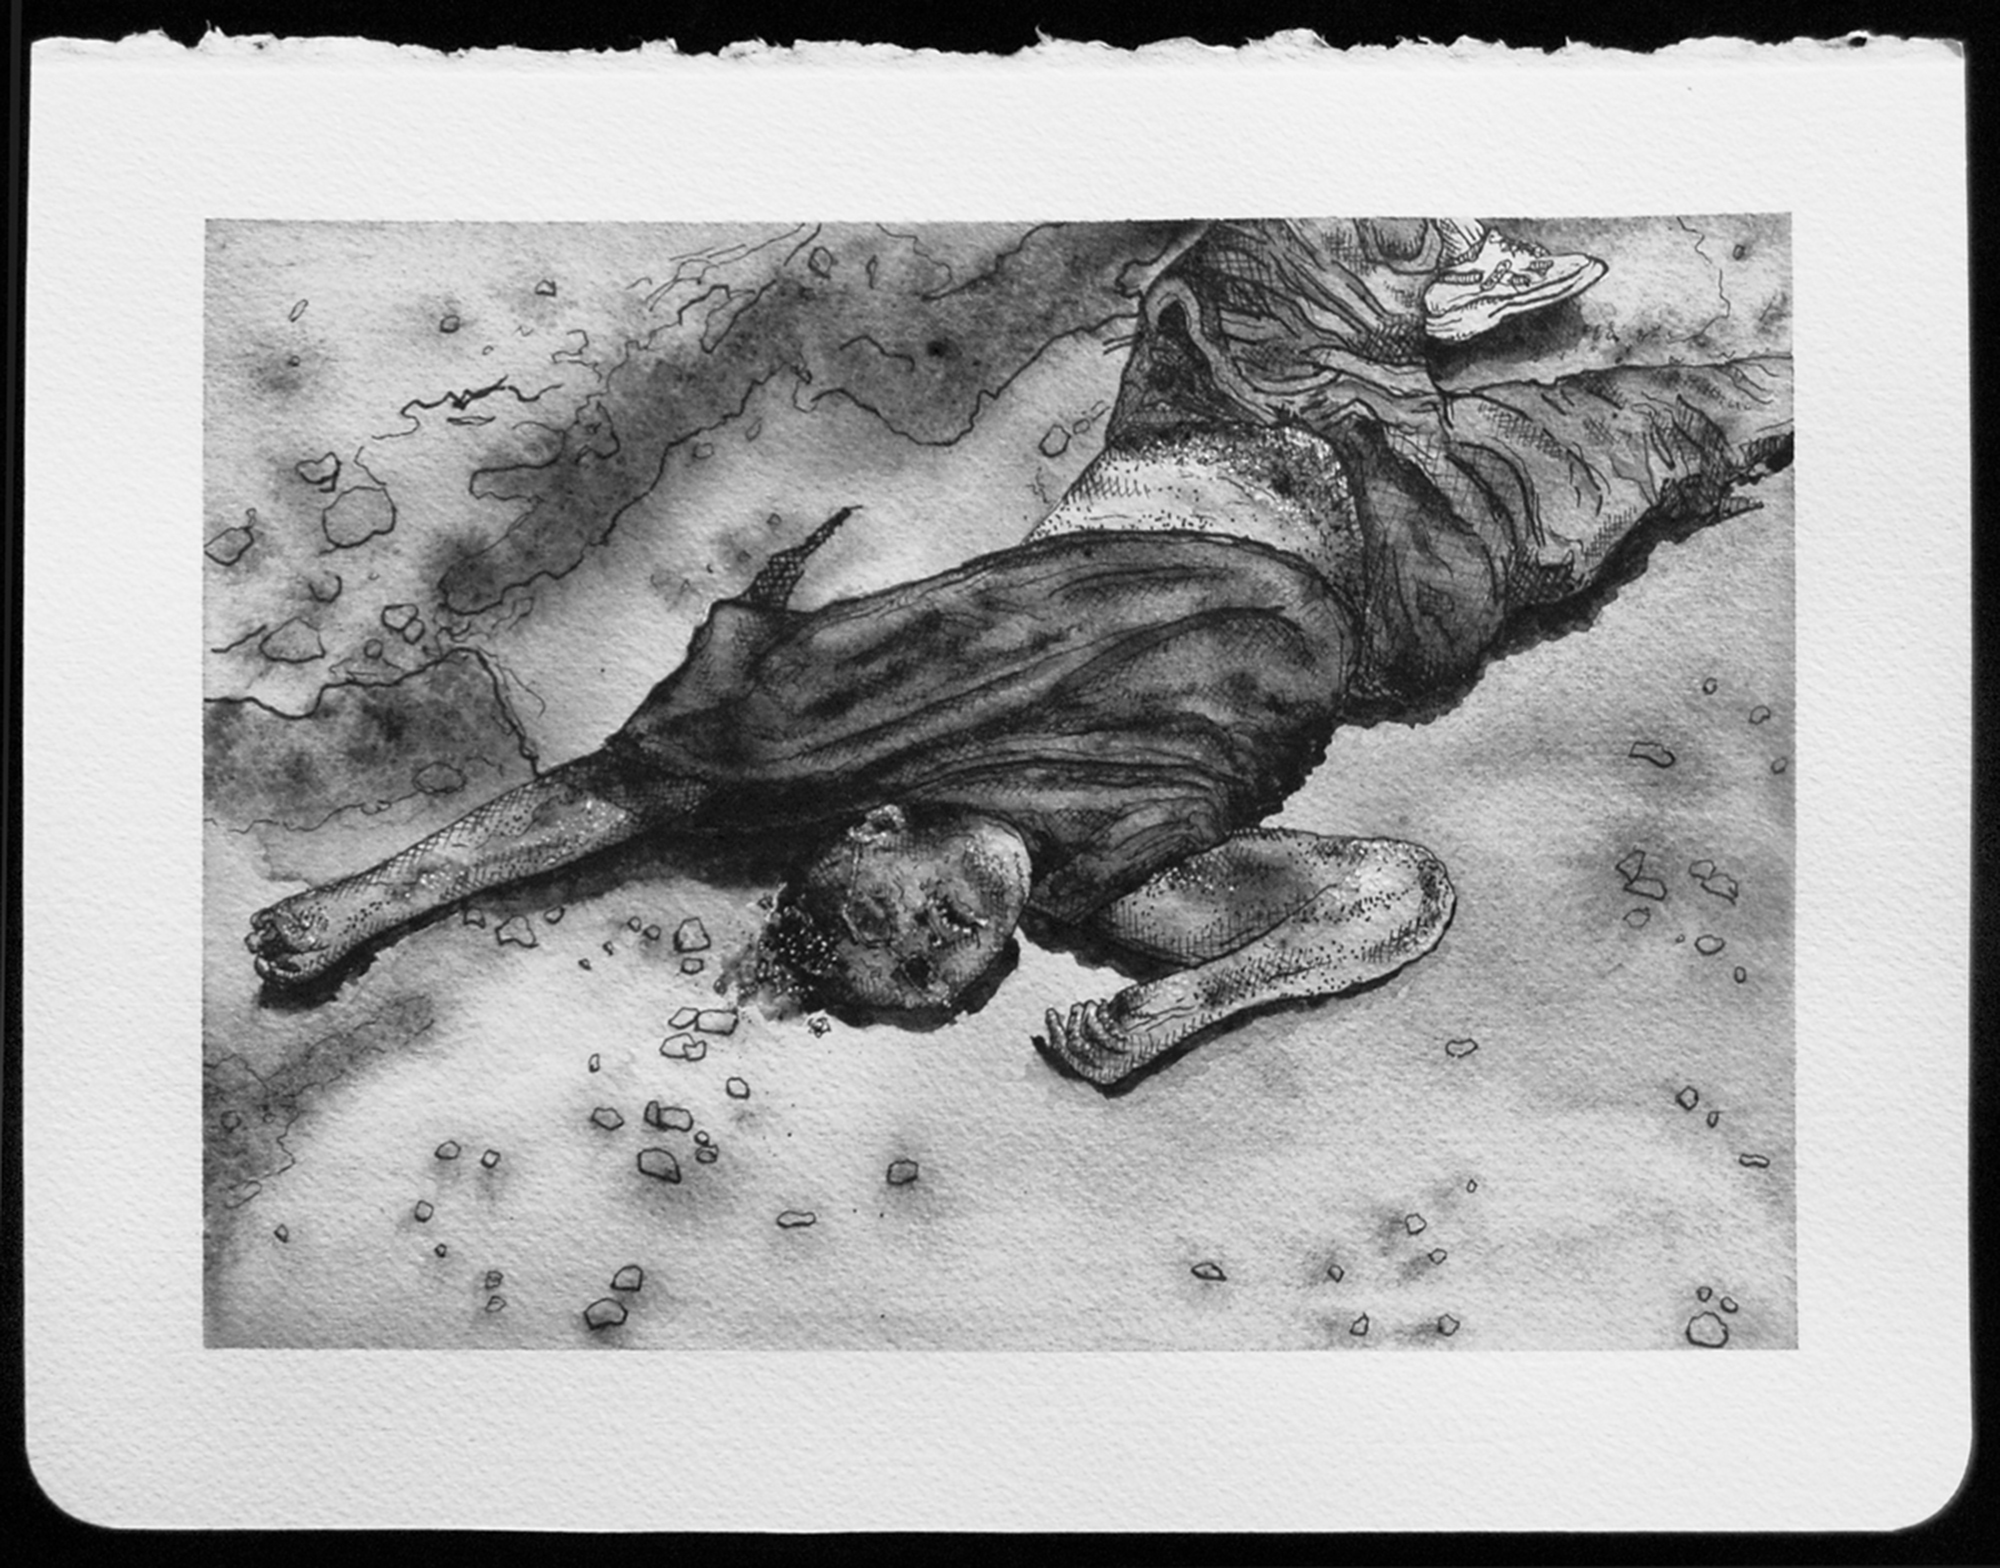 DEATH_117.jpg,2010  |  8.25 x 11 inches  |  archival ink and gouache on paper